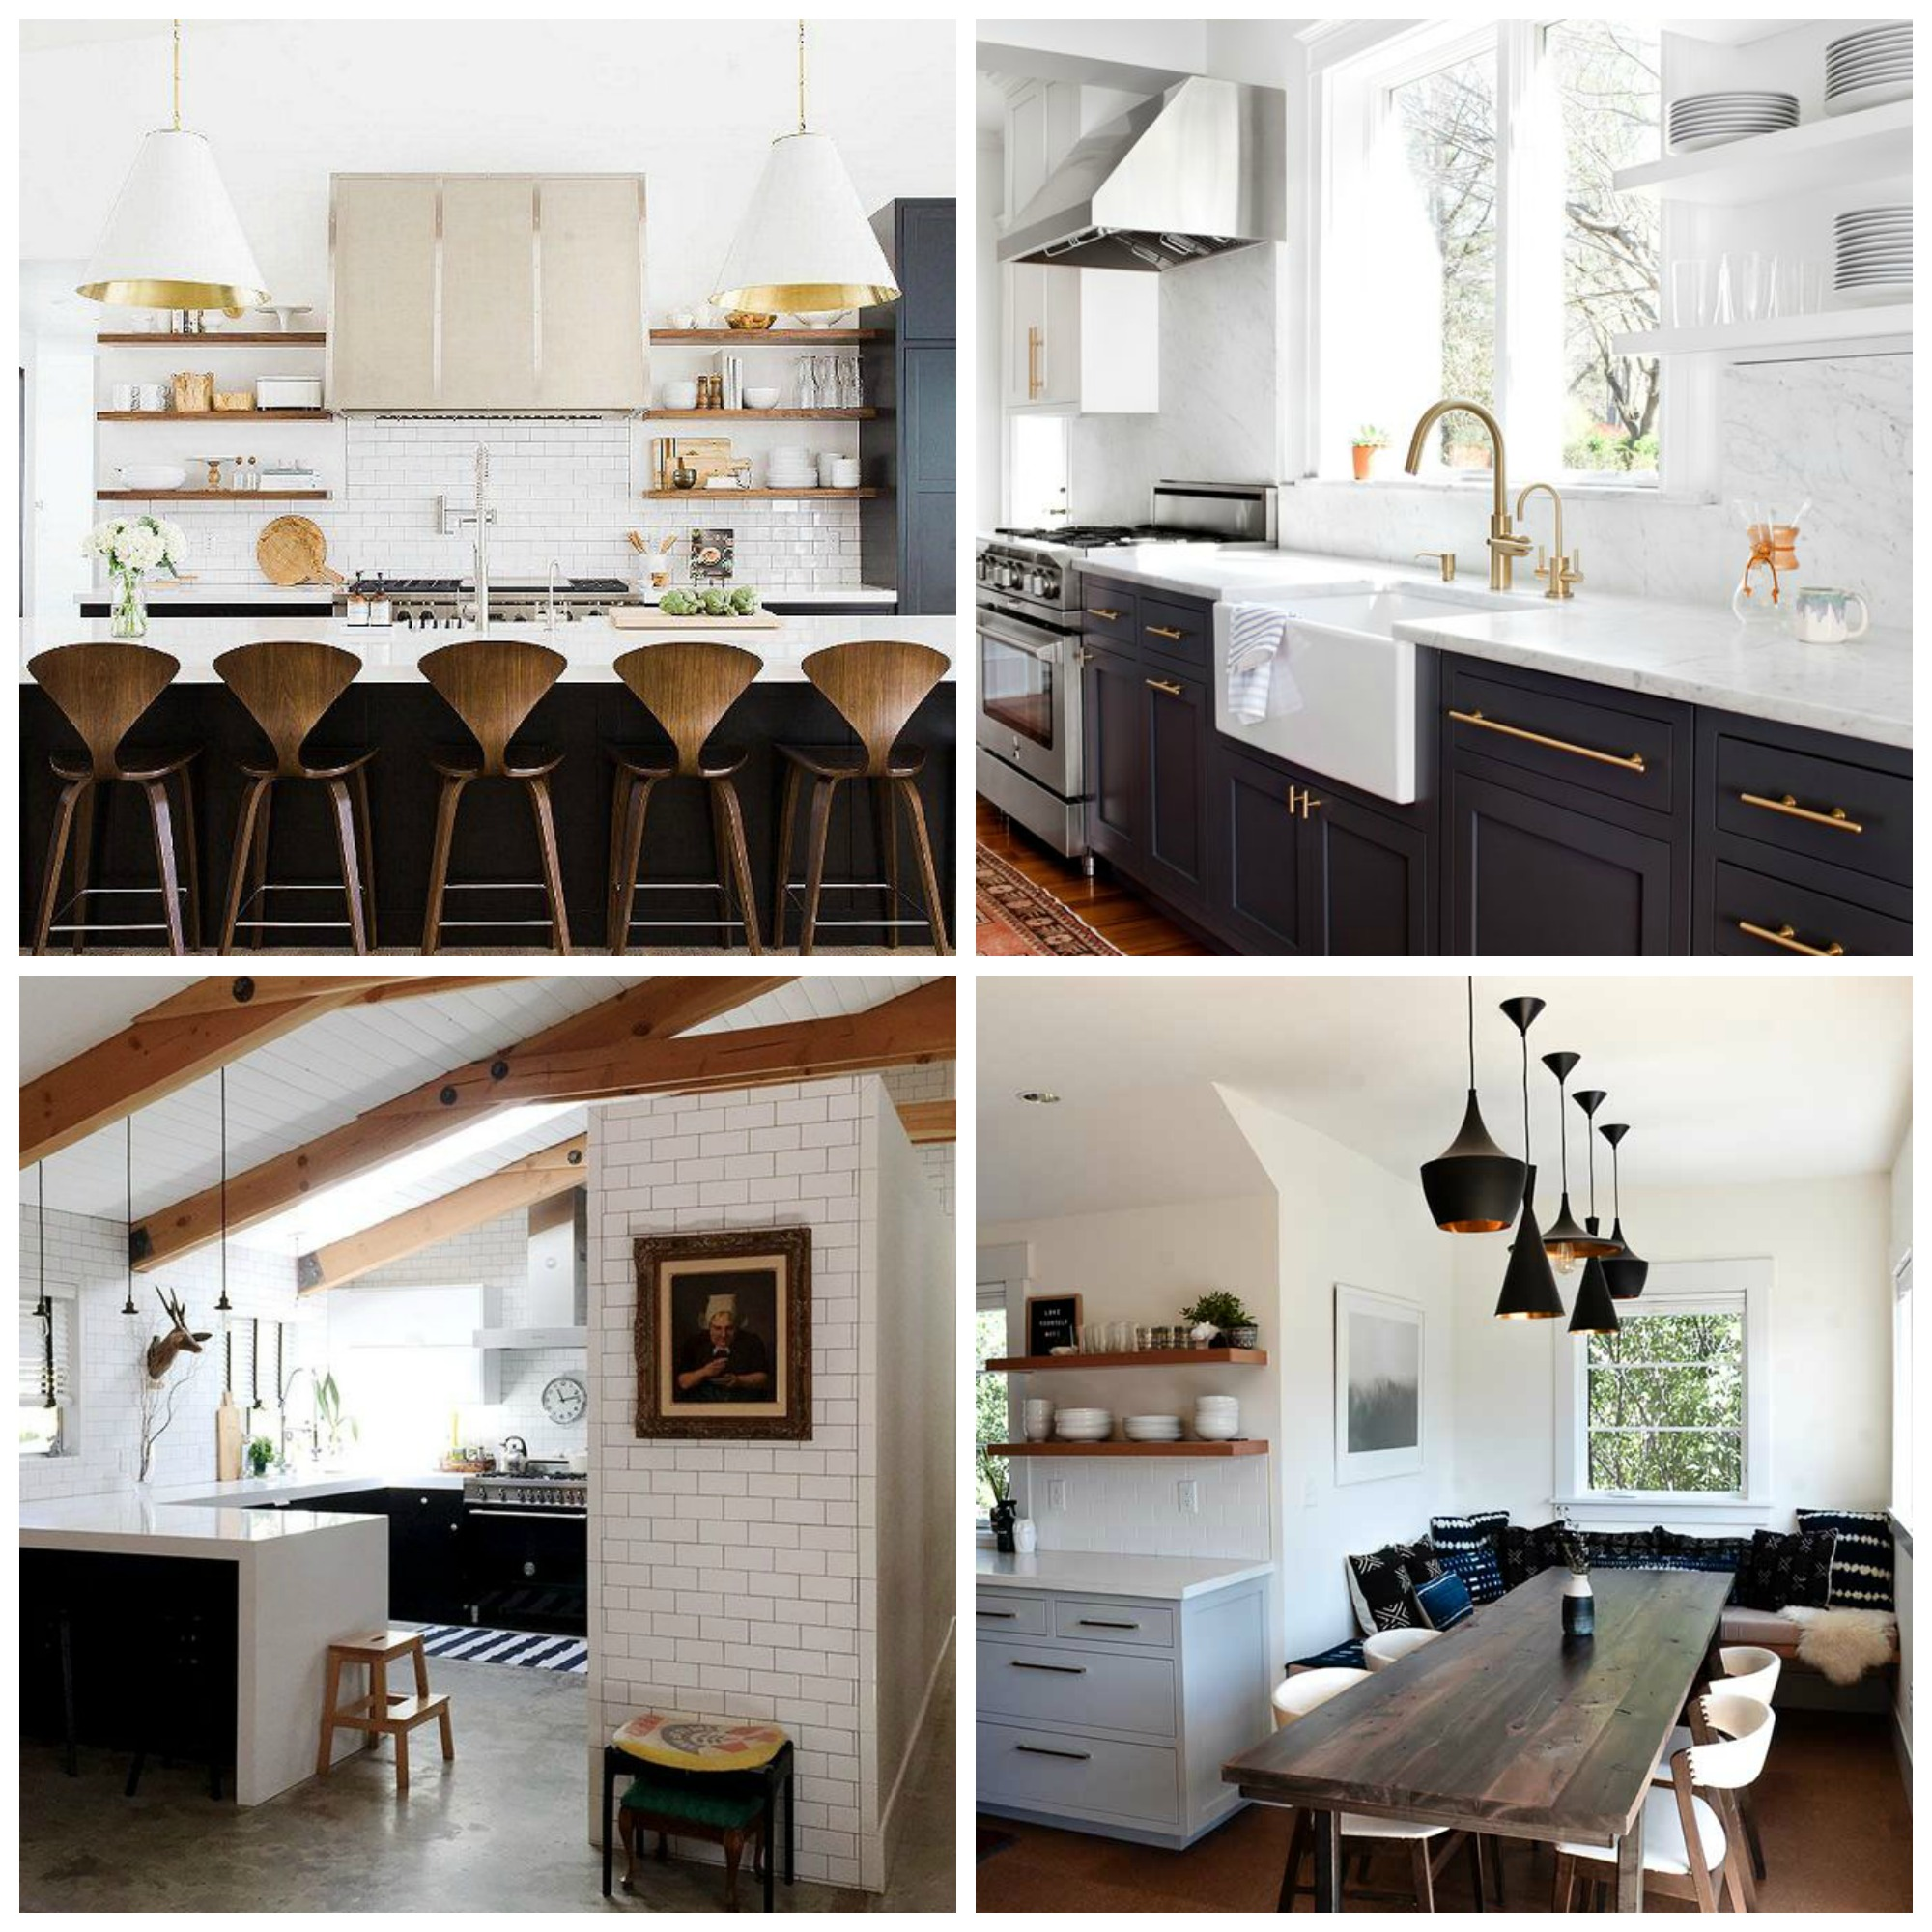 kitcheninspocollage